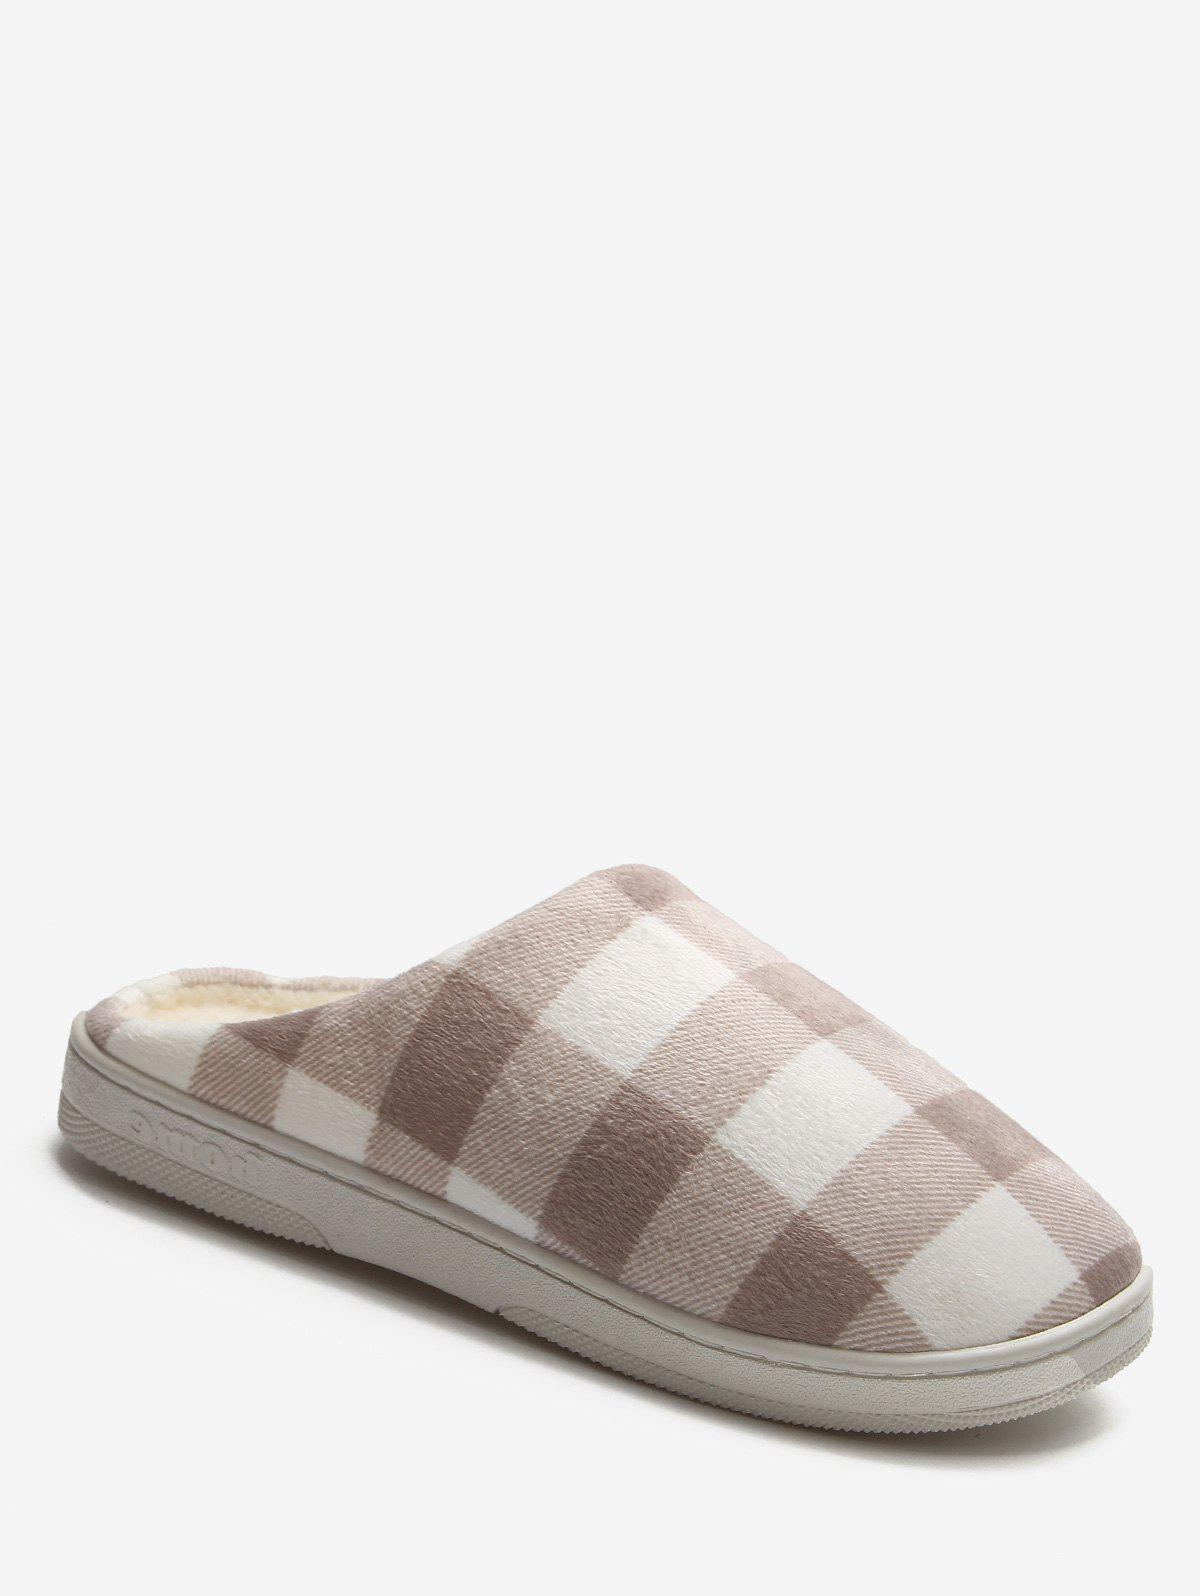 Fashion Plaid Cotton Indoor Warm Slippers